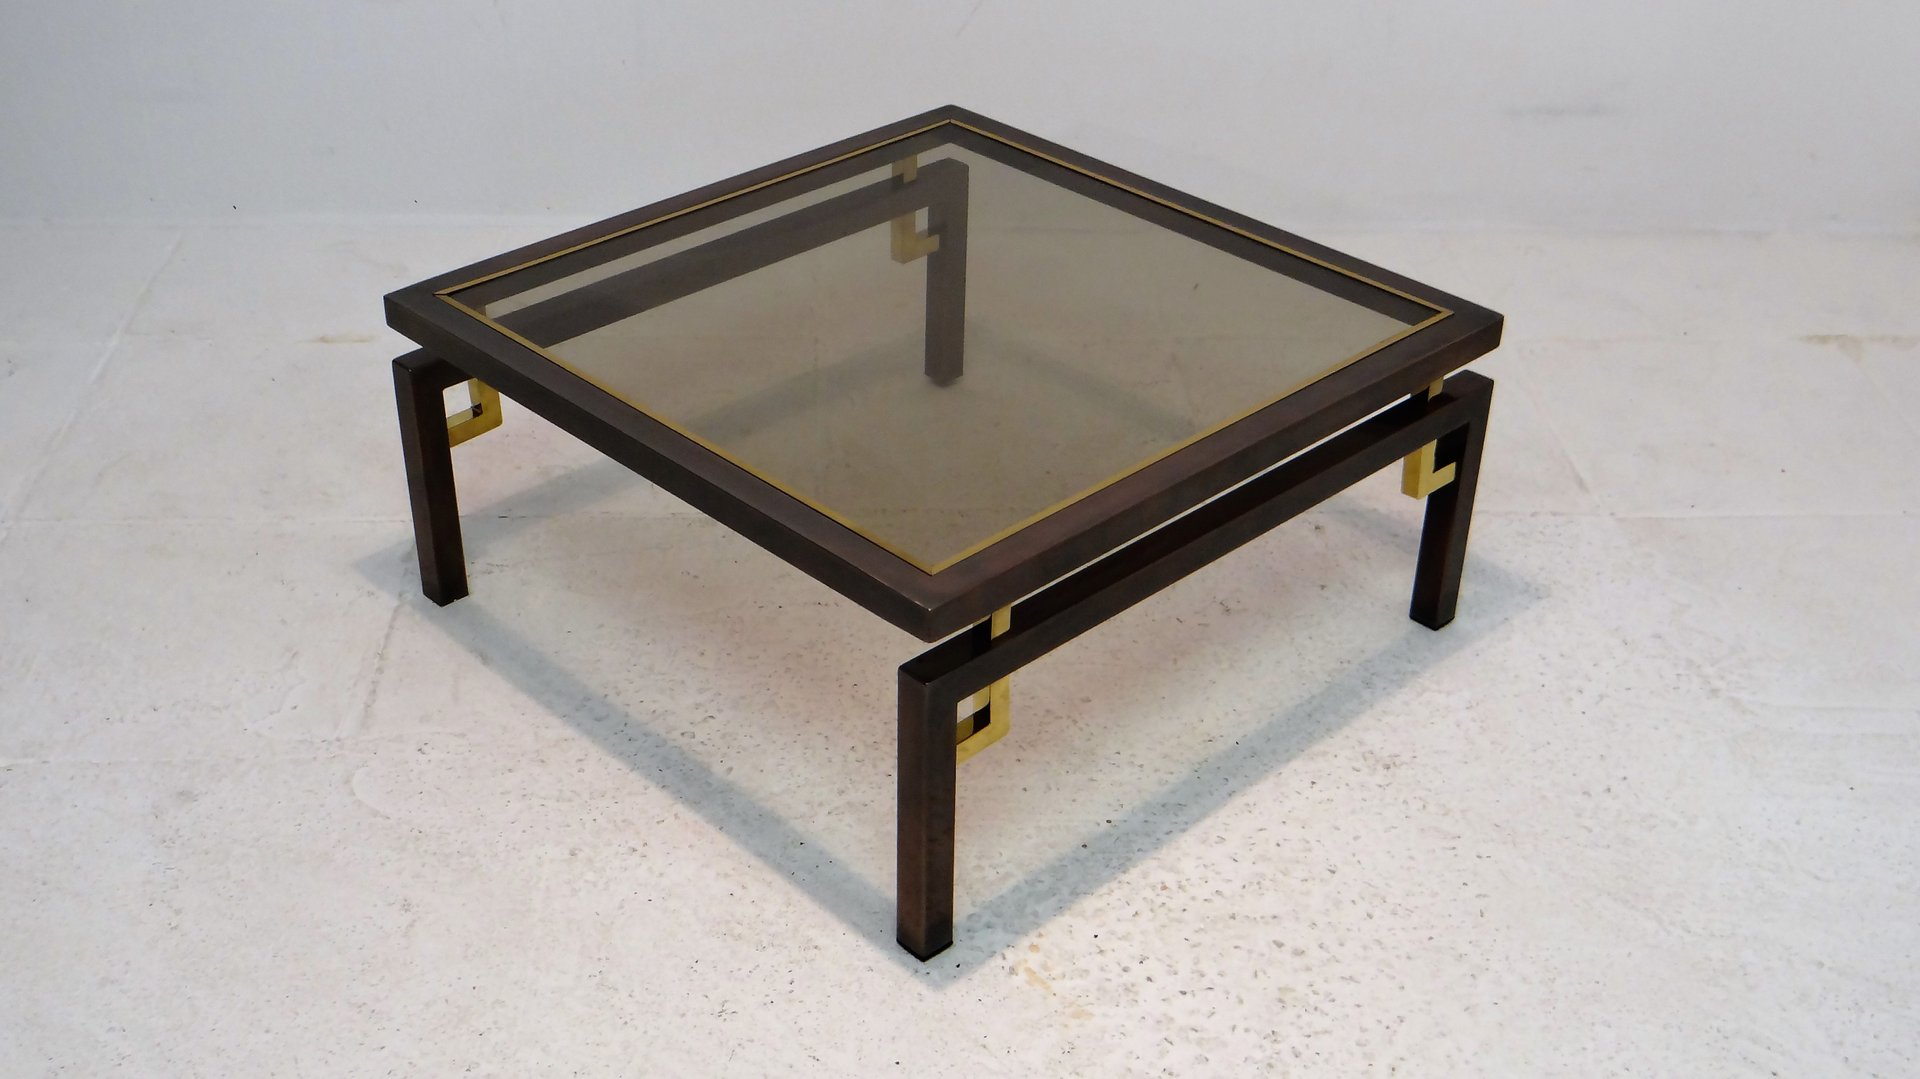 Vintage brushed bronze copper coffee table from belgochrom